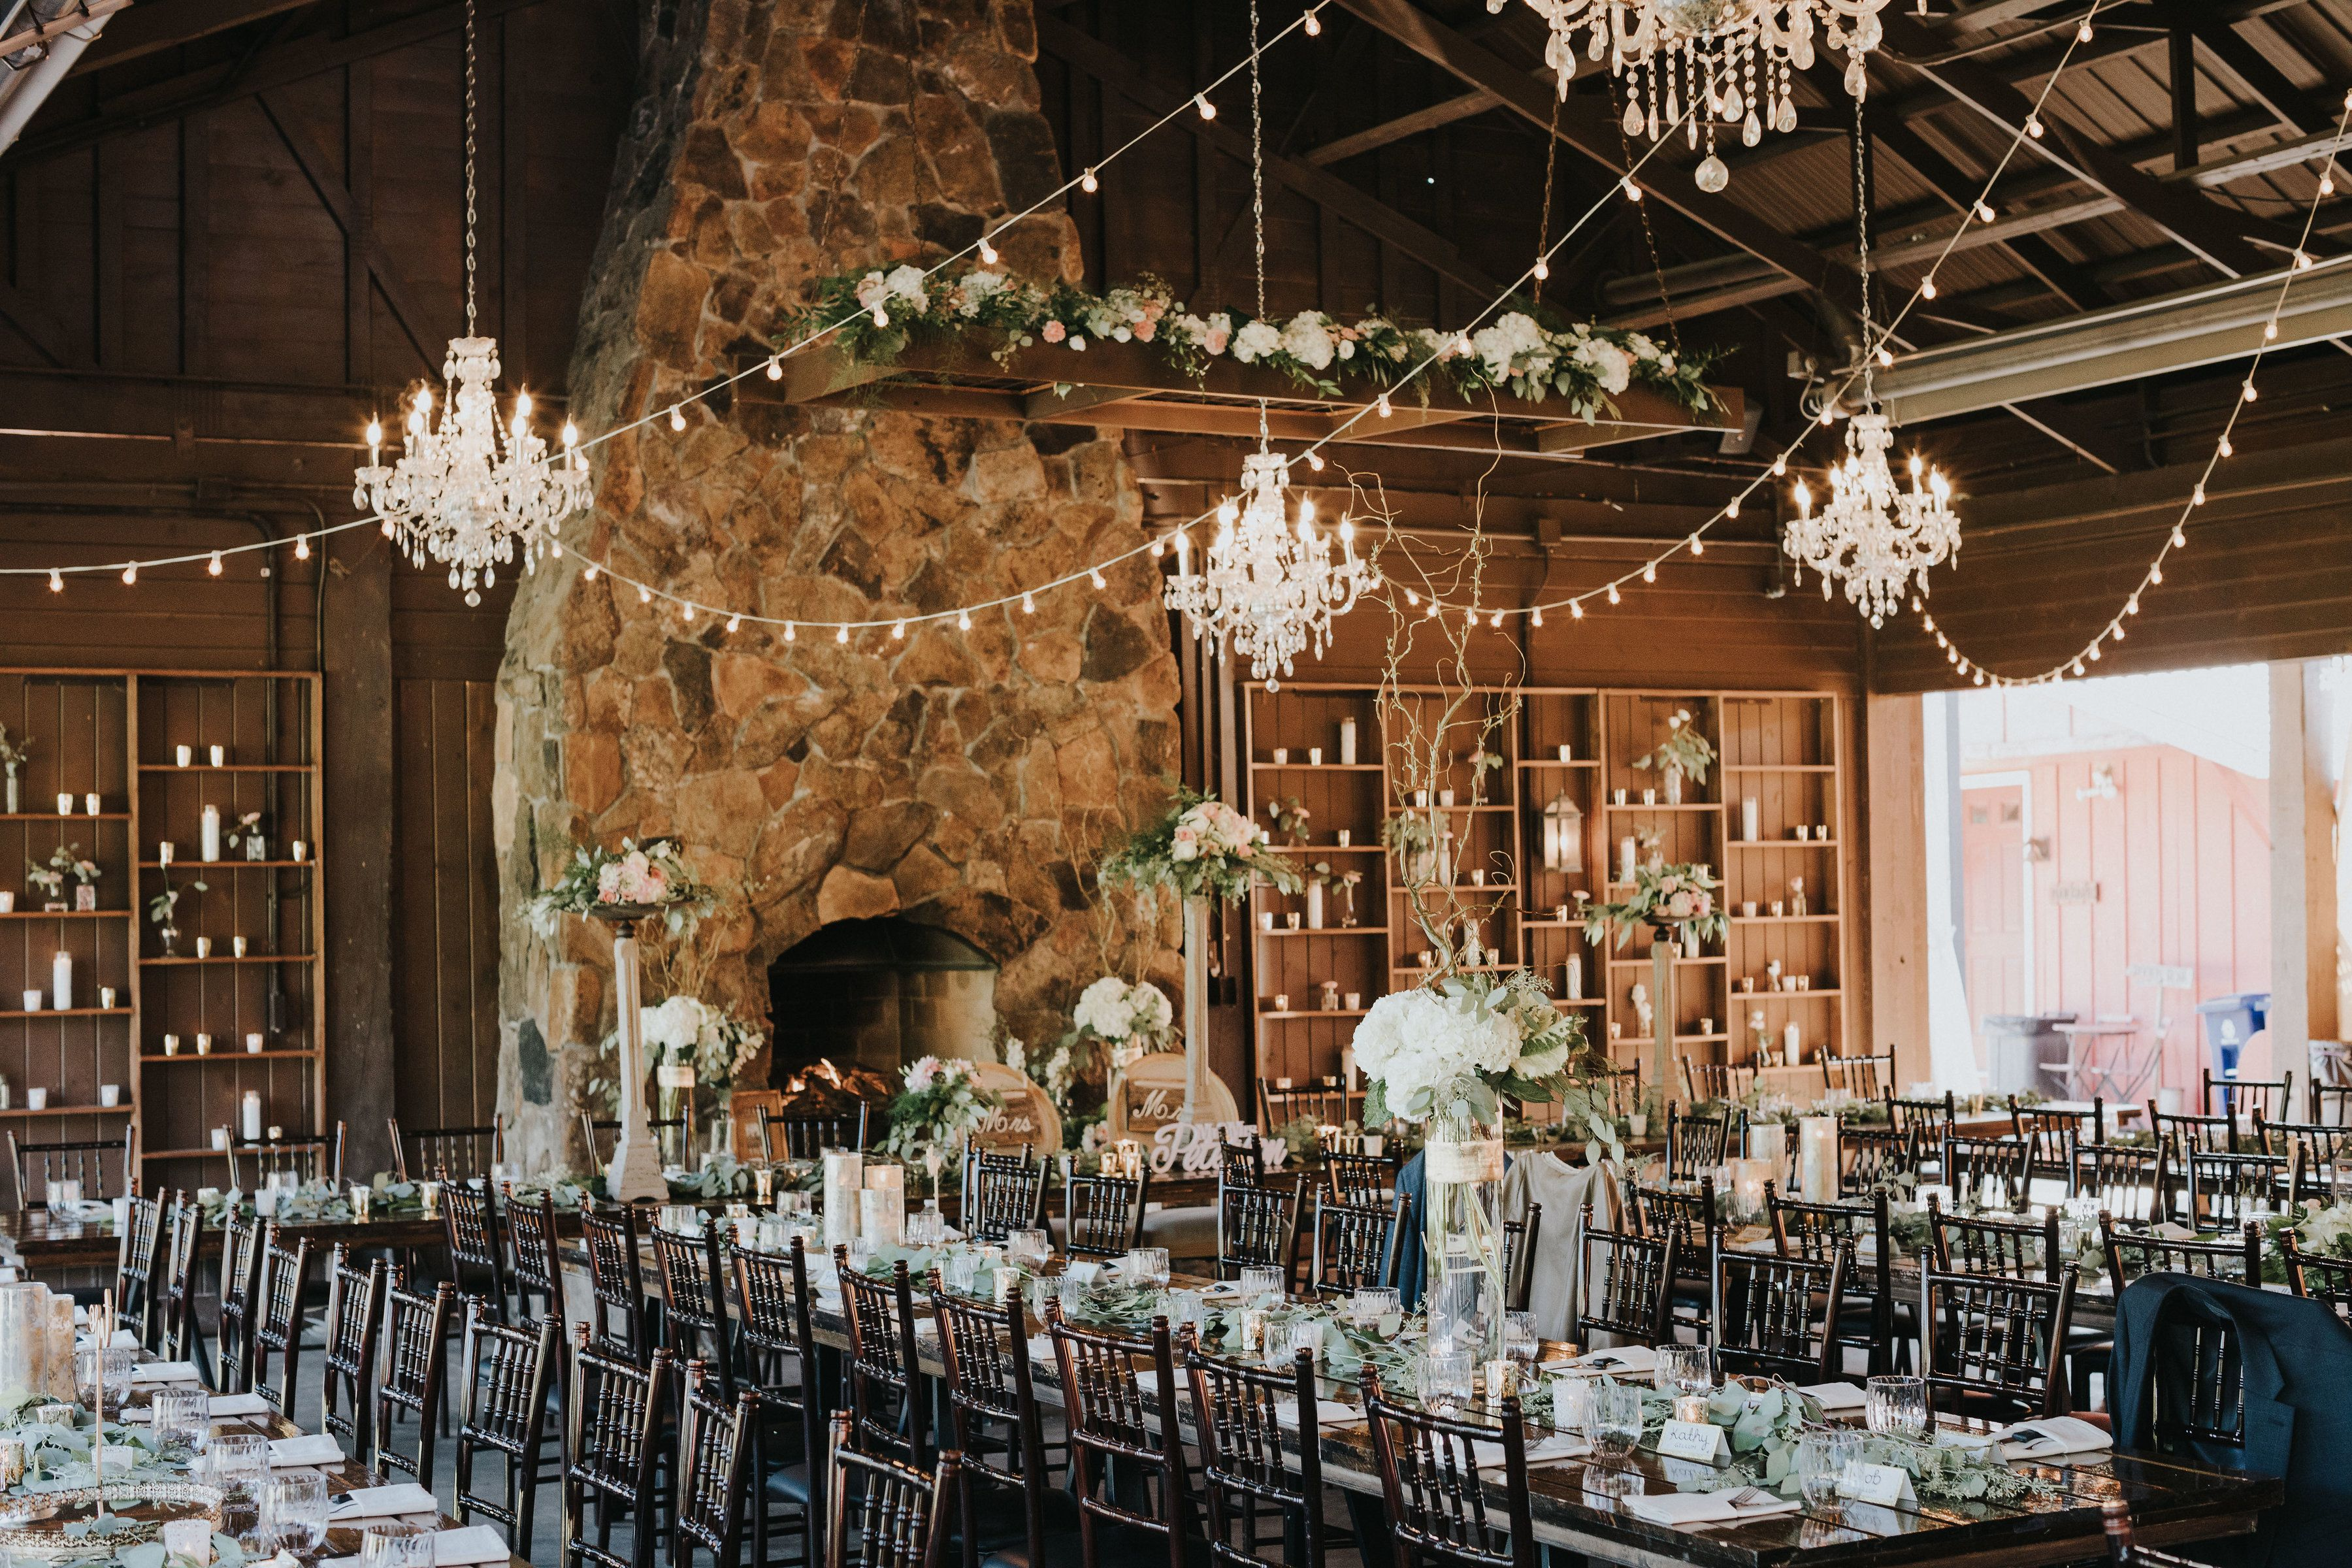 Beautifully Decorate Dinner Pavilion At Hope Glen Farm The Chandeliers Give This An Elegant Touch To The Rustic Outdo White Oak Tree Rustic Outdoor Farm Style